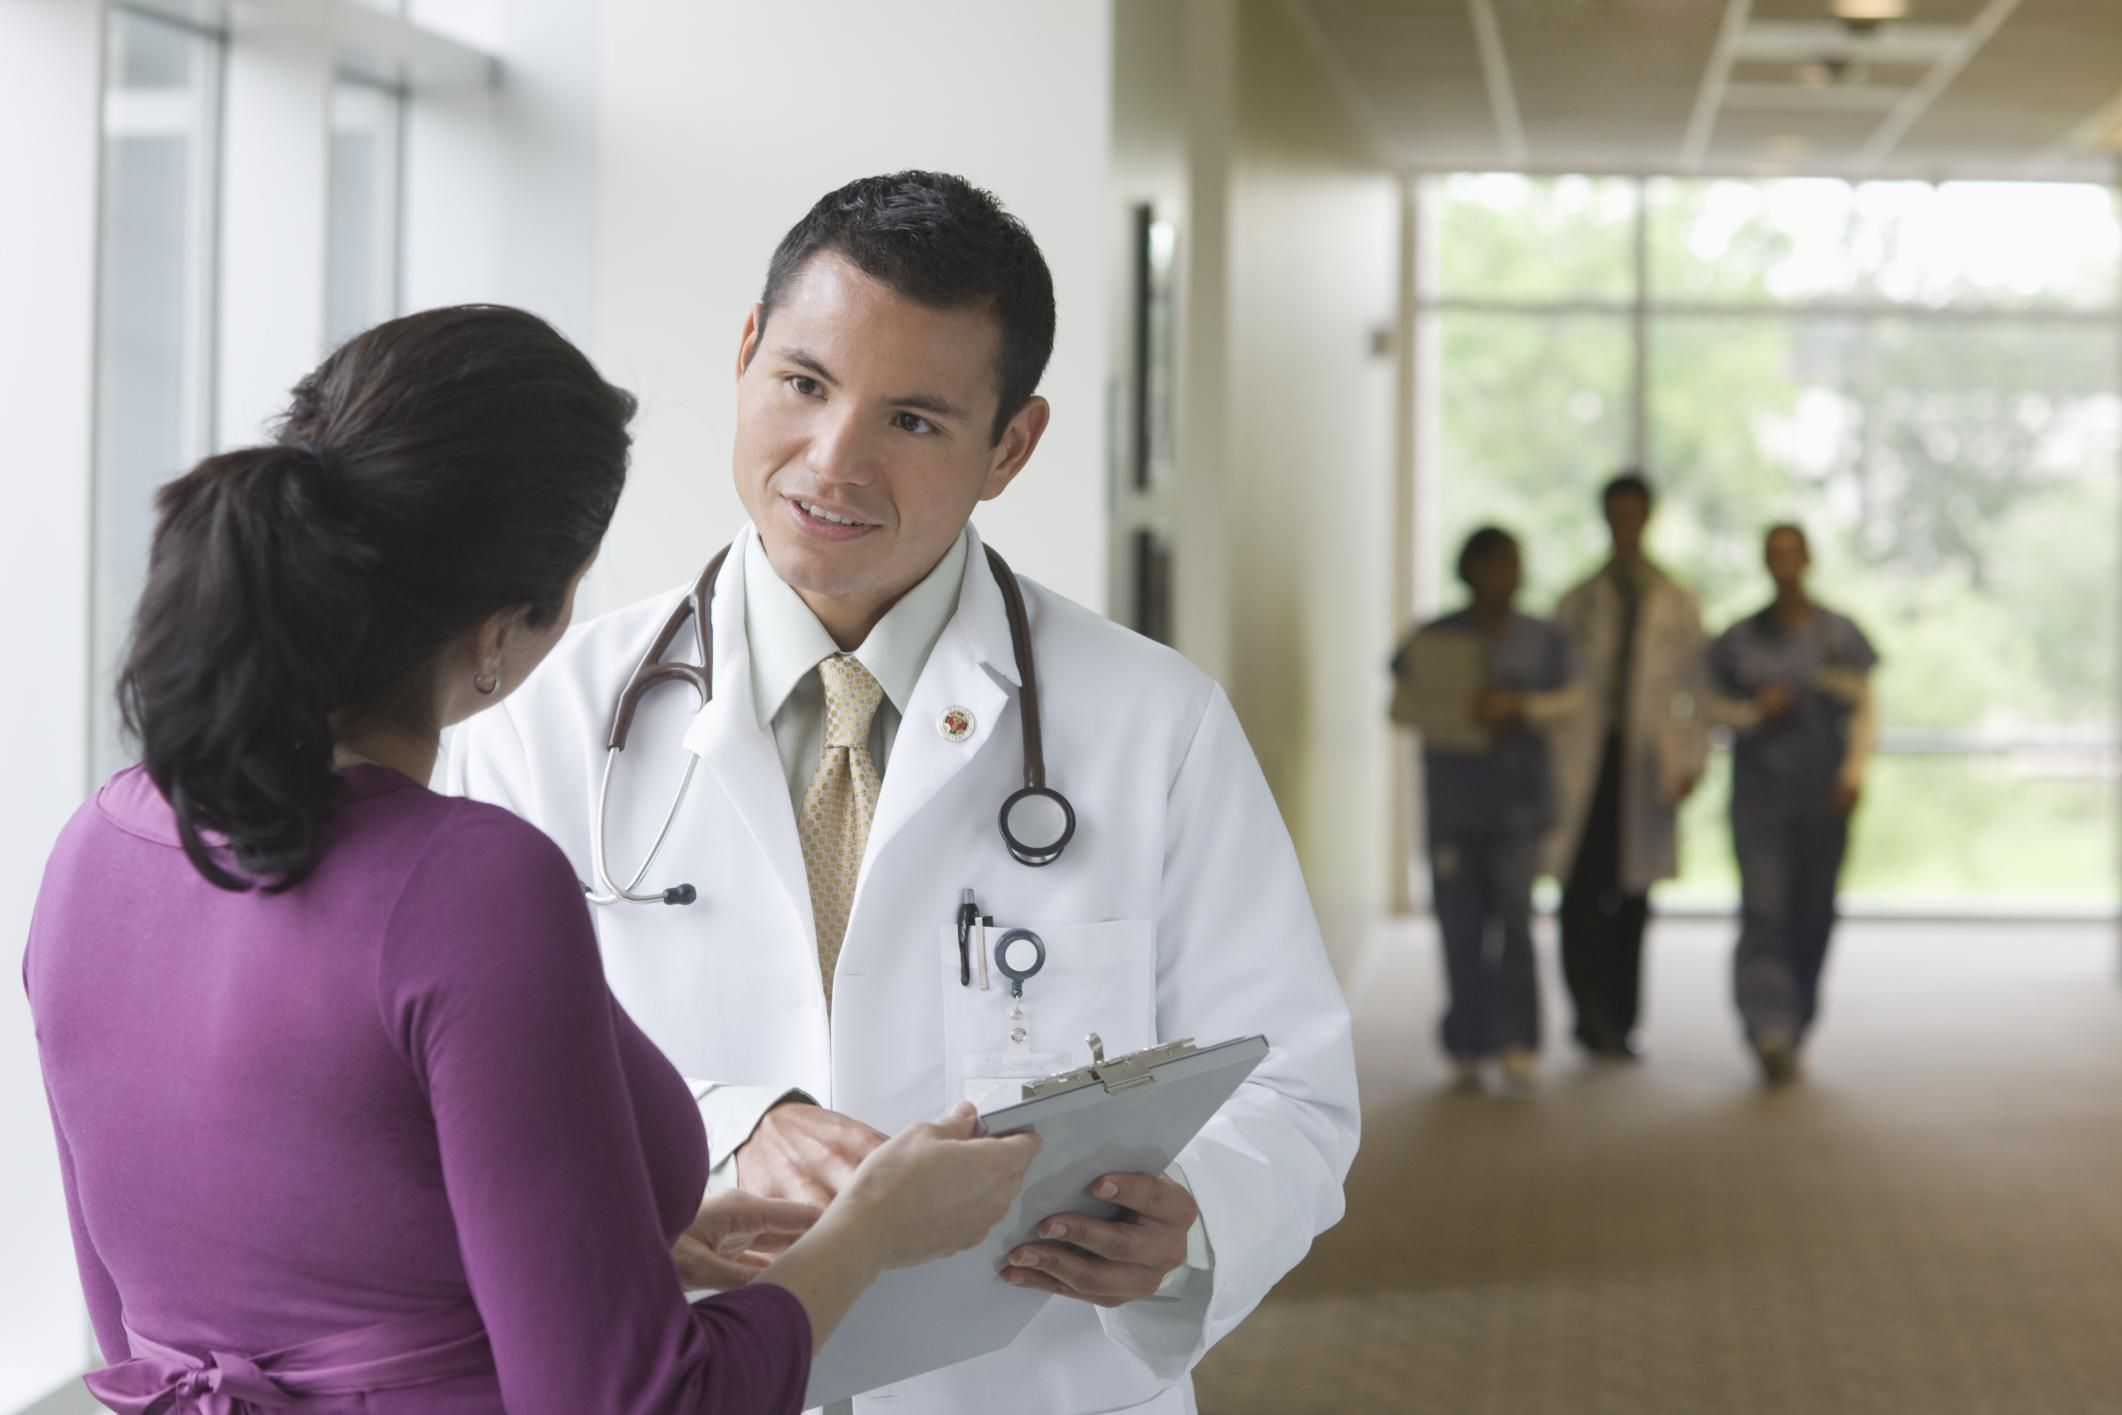 Every Thyroid Patient Does Not Need An Endocrinologist